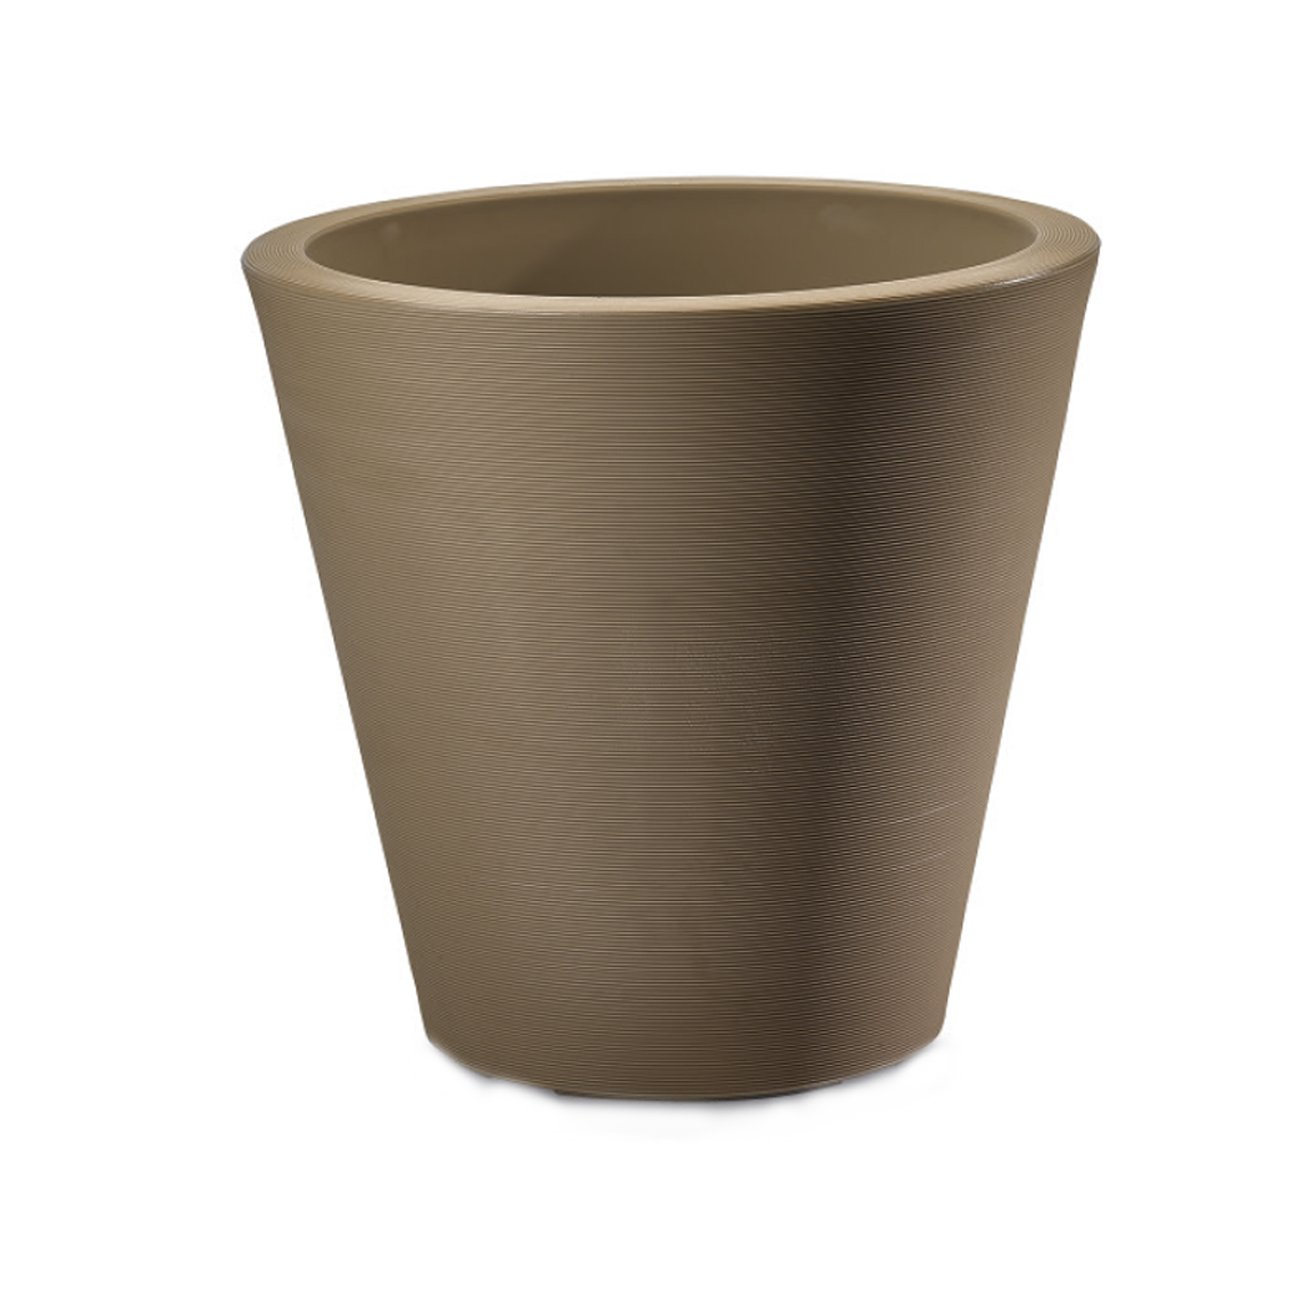 Crescent Garden Rotational Molded Madison Planter, 20'', Silt by Crescent Garden